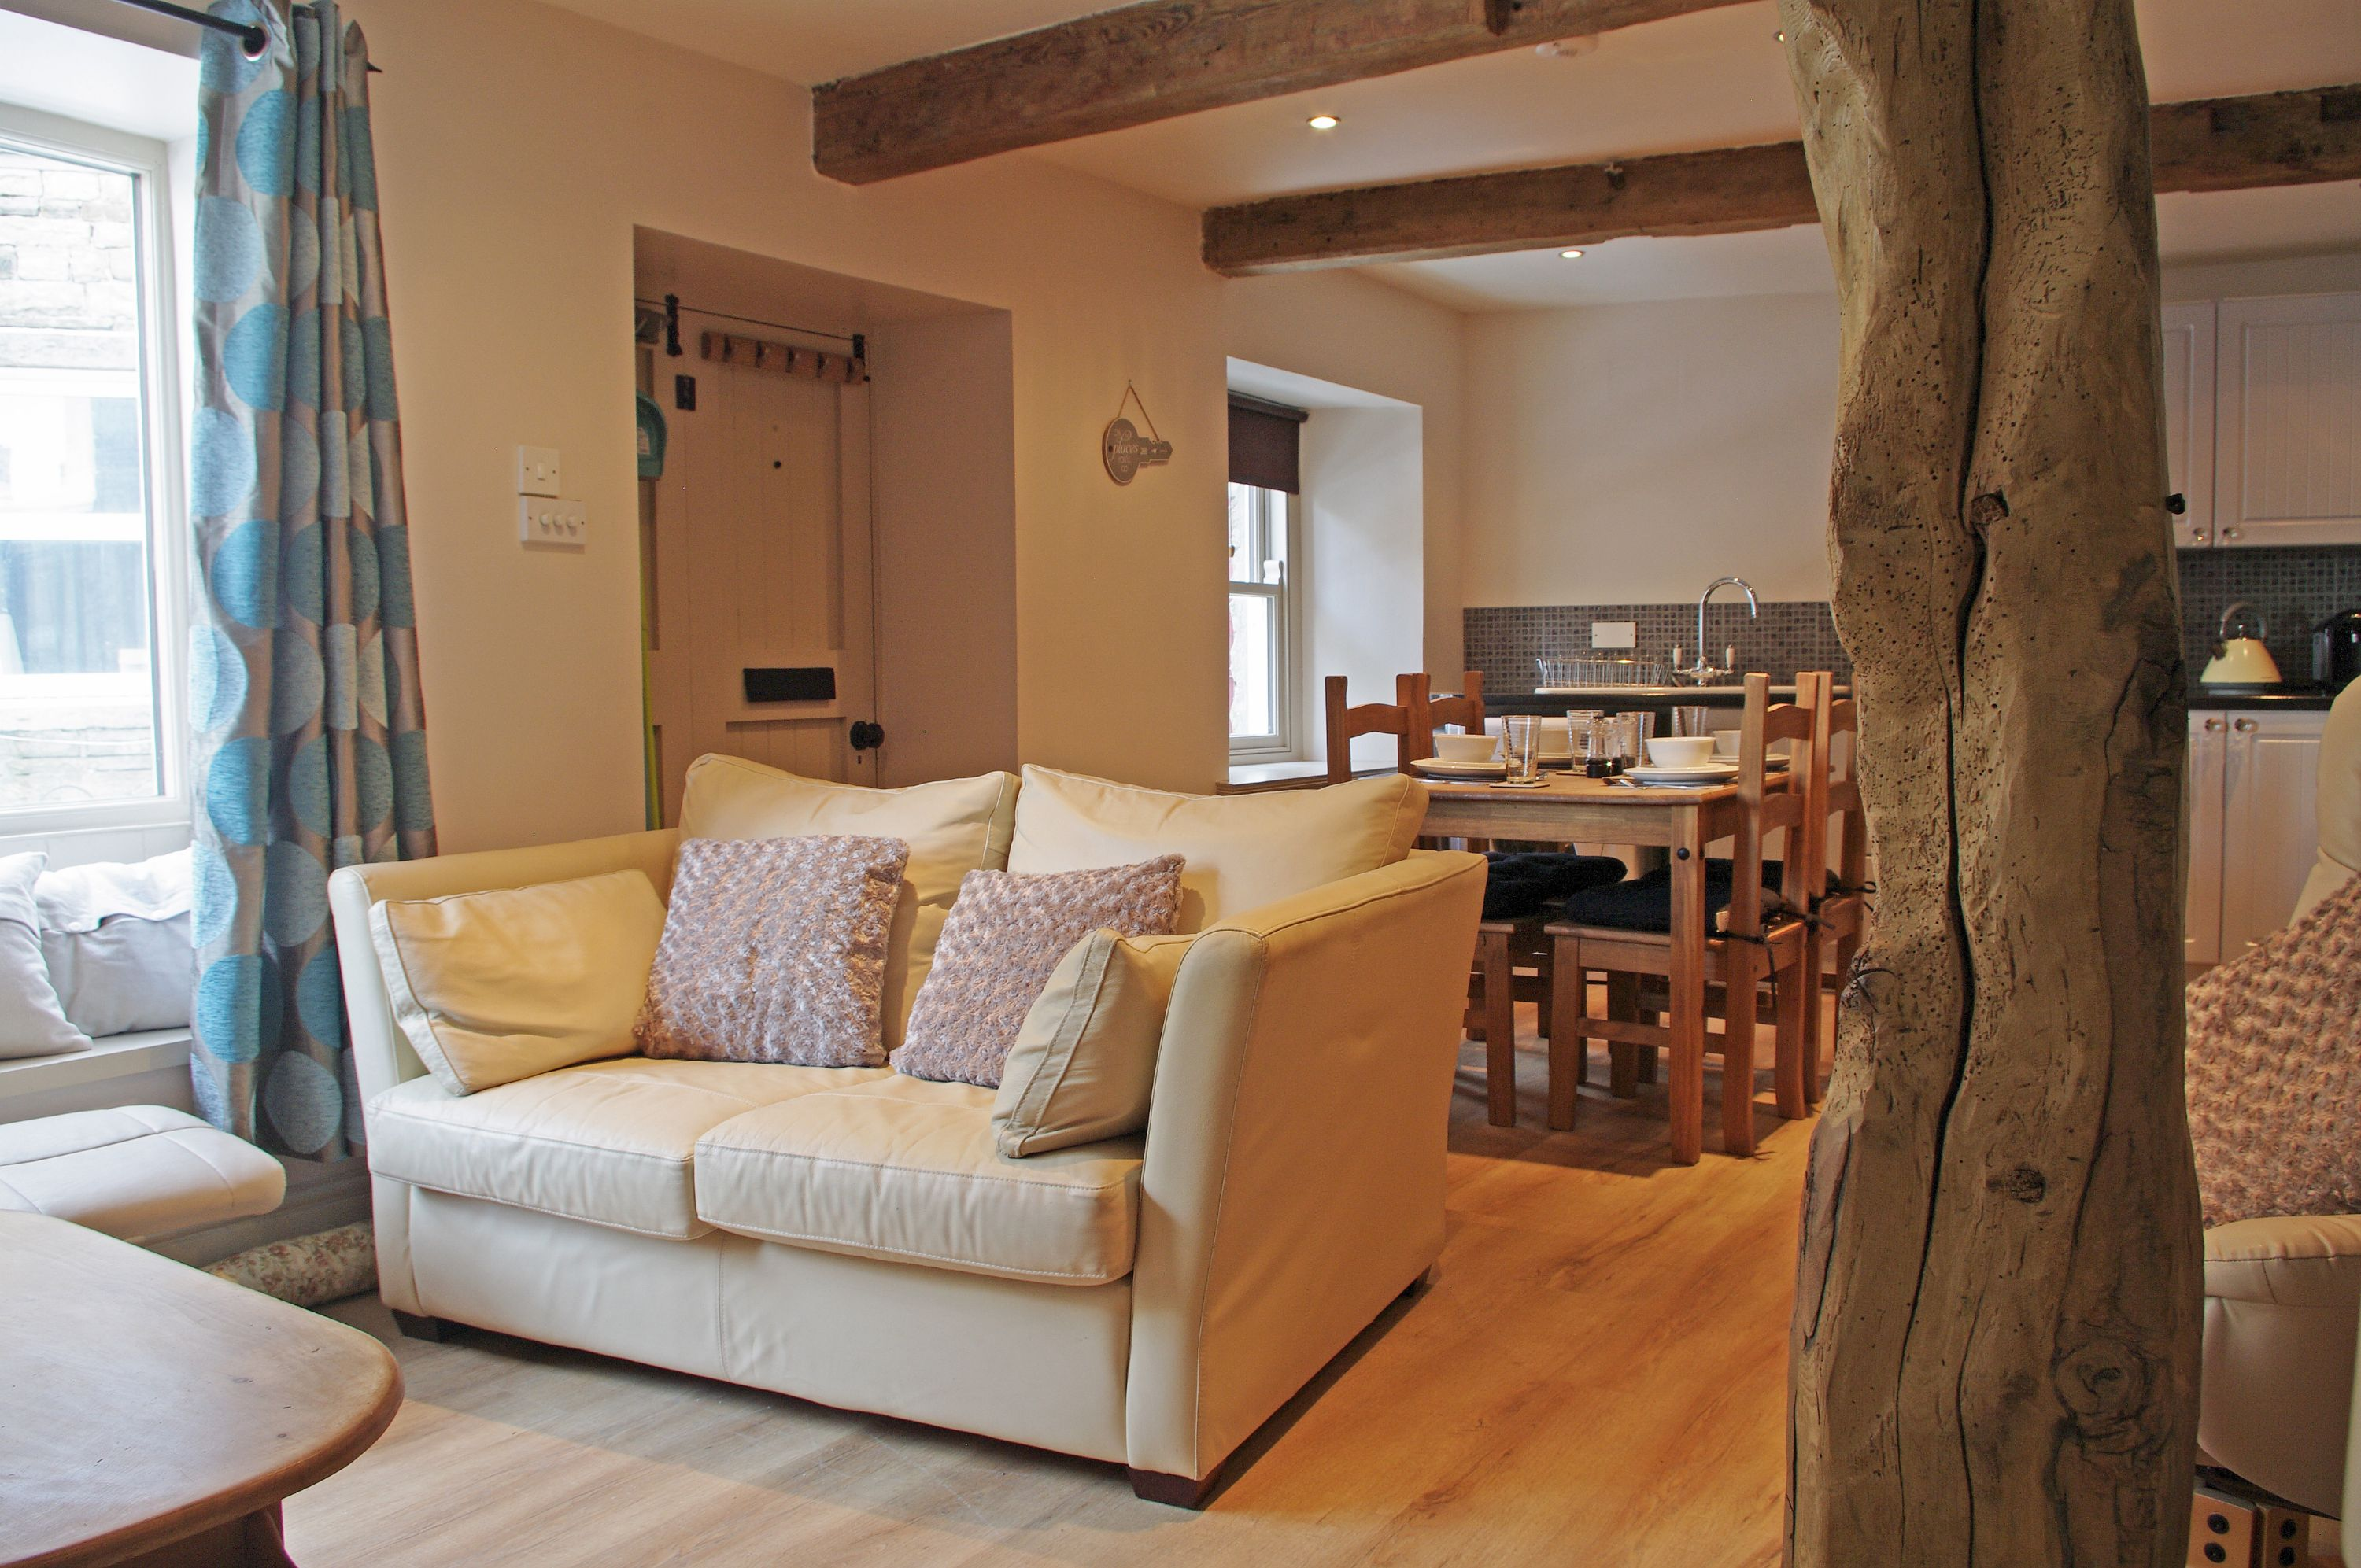 Lounge area at Cartwheel Cottage in Hawes, Wensleydale in the Yorkshire Dales